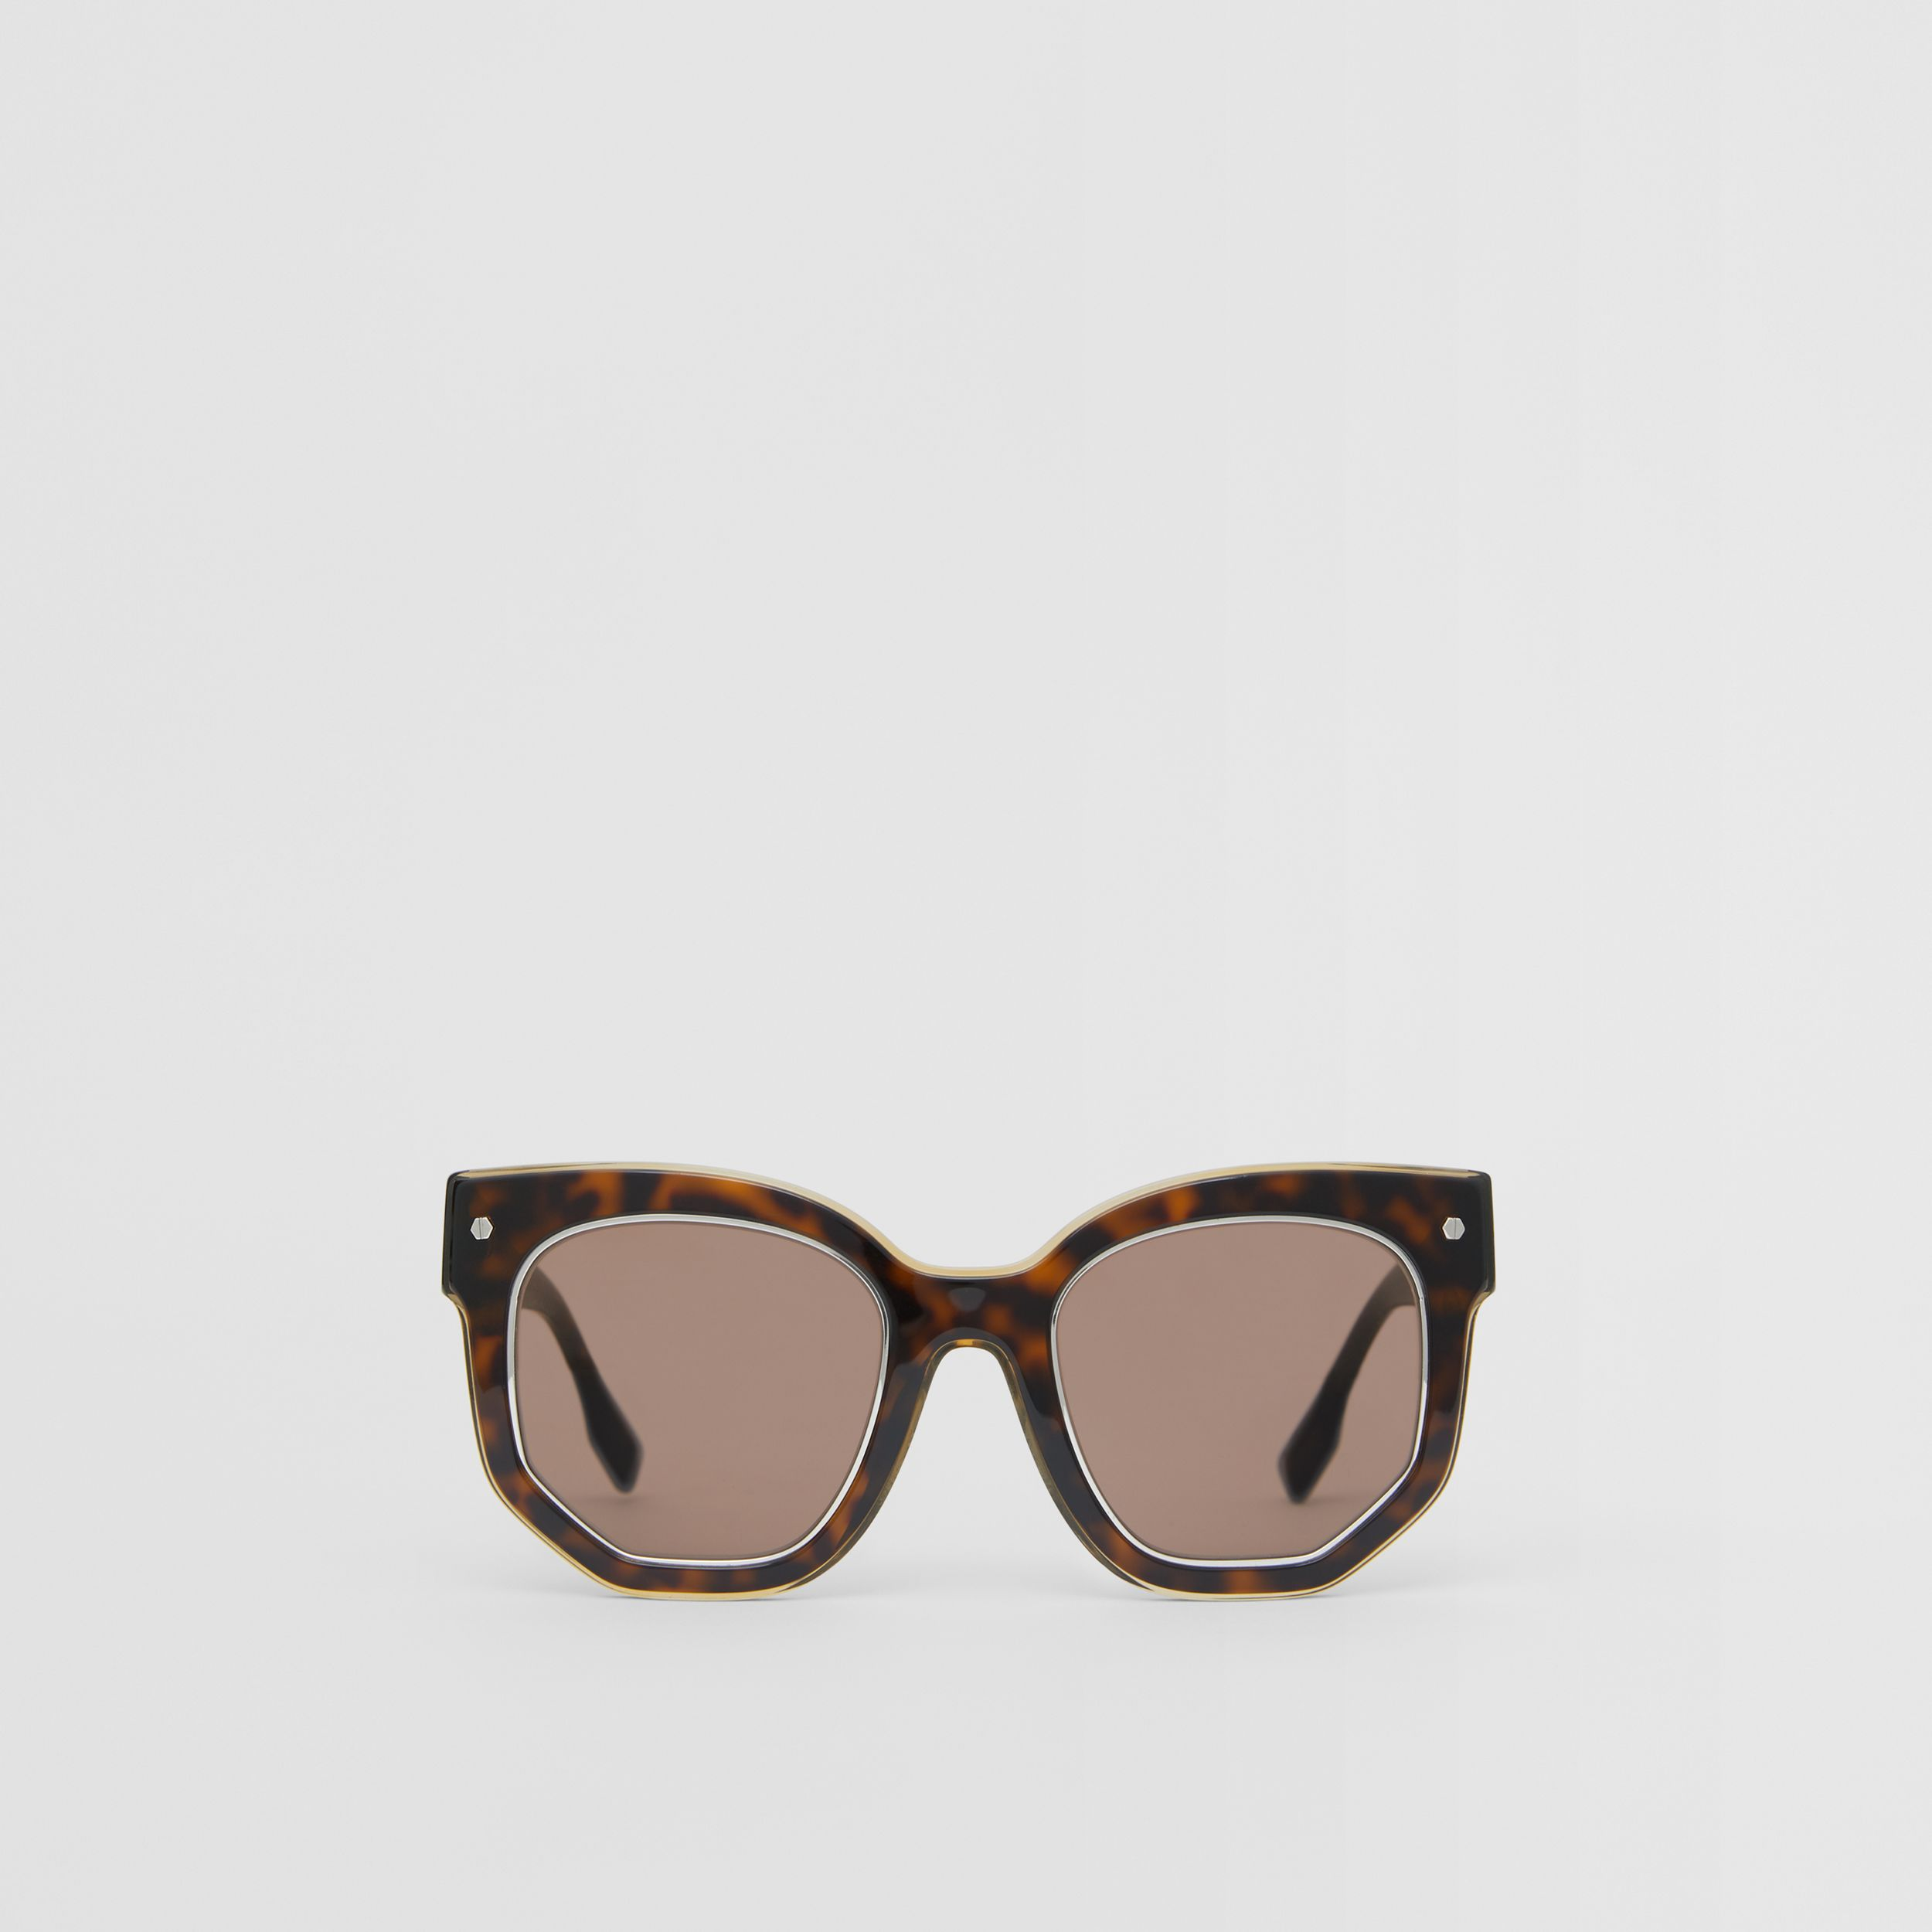 Geometric Frame Sunglasses in Tortoiseshell - Women | Burberry Canada - 1